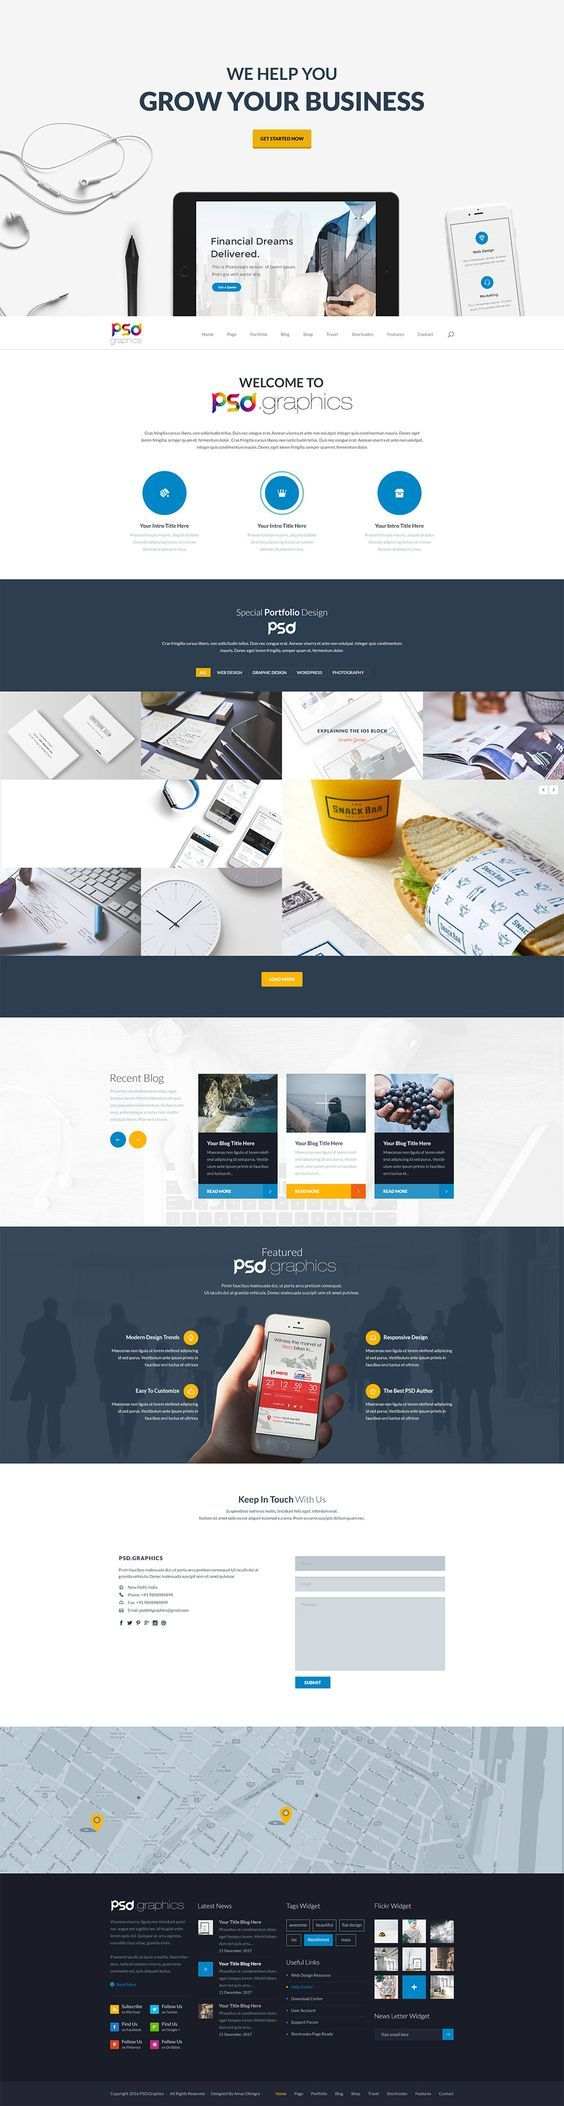 Professional-Business-Website-Template-Free-PSD